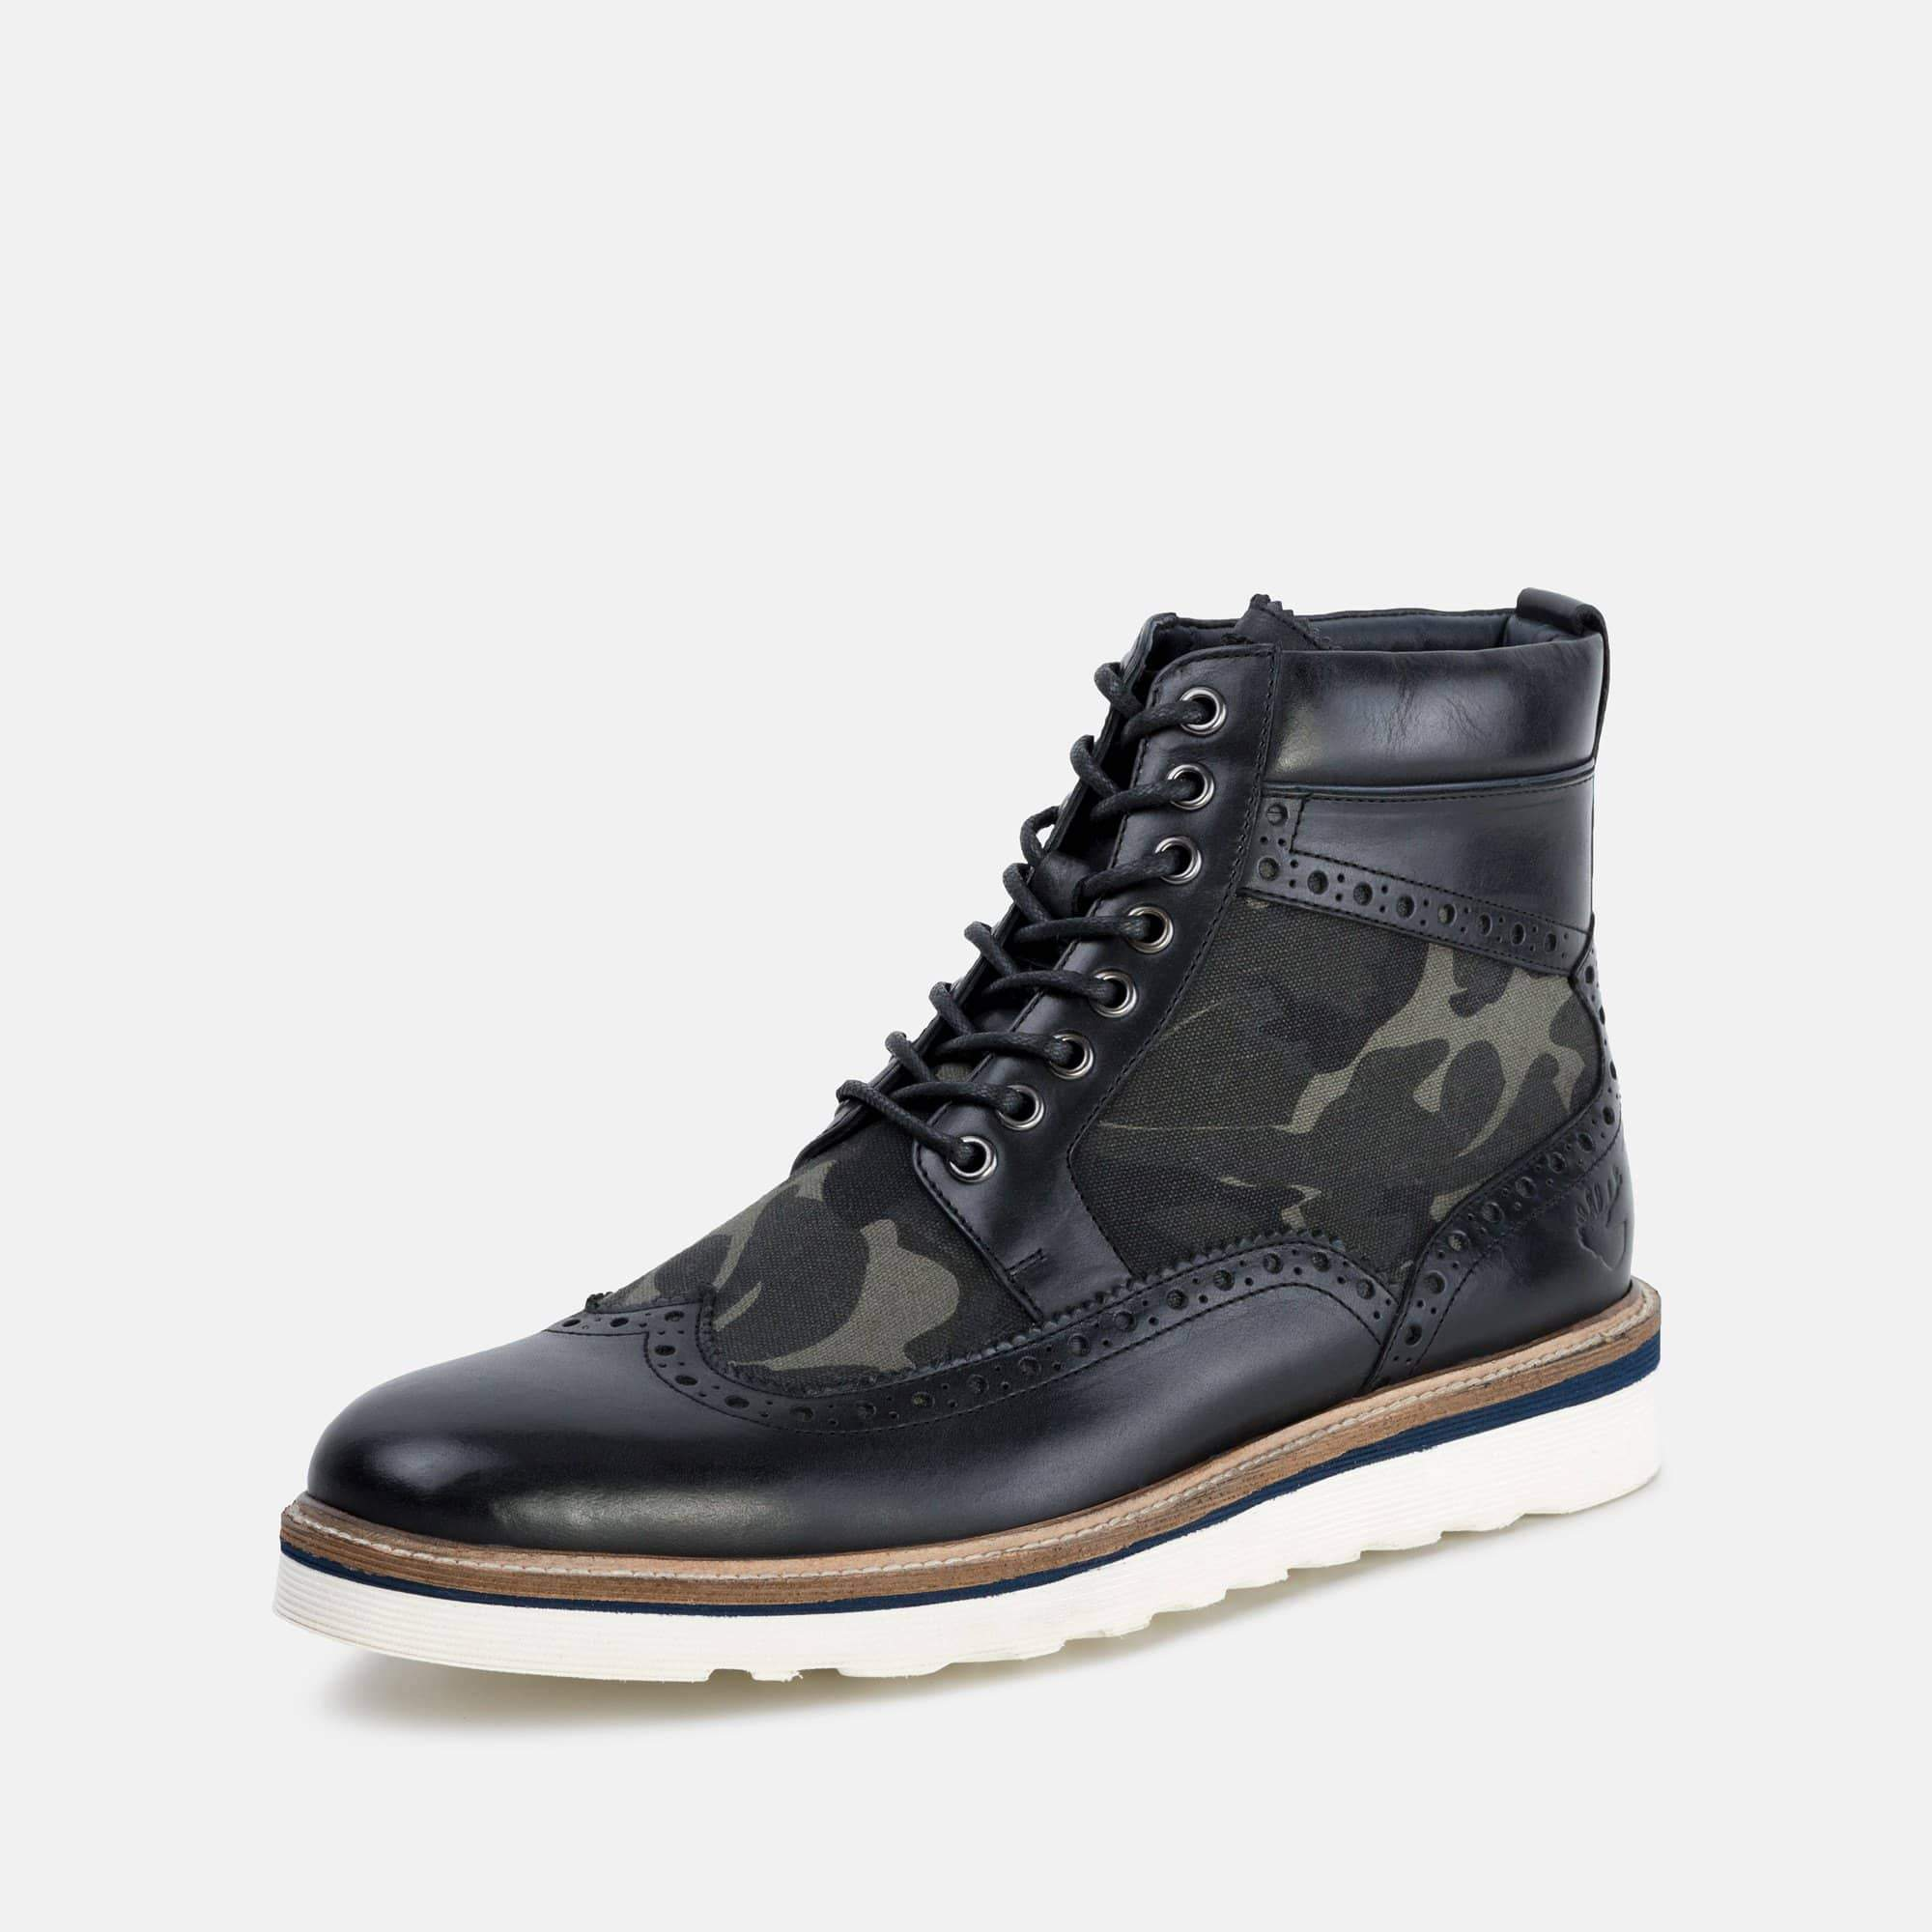 Goodwin Smith Footwear AW19 Goodwin Smith Mens Linwood Camo Leather Wedge Boot